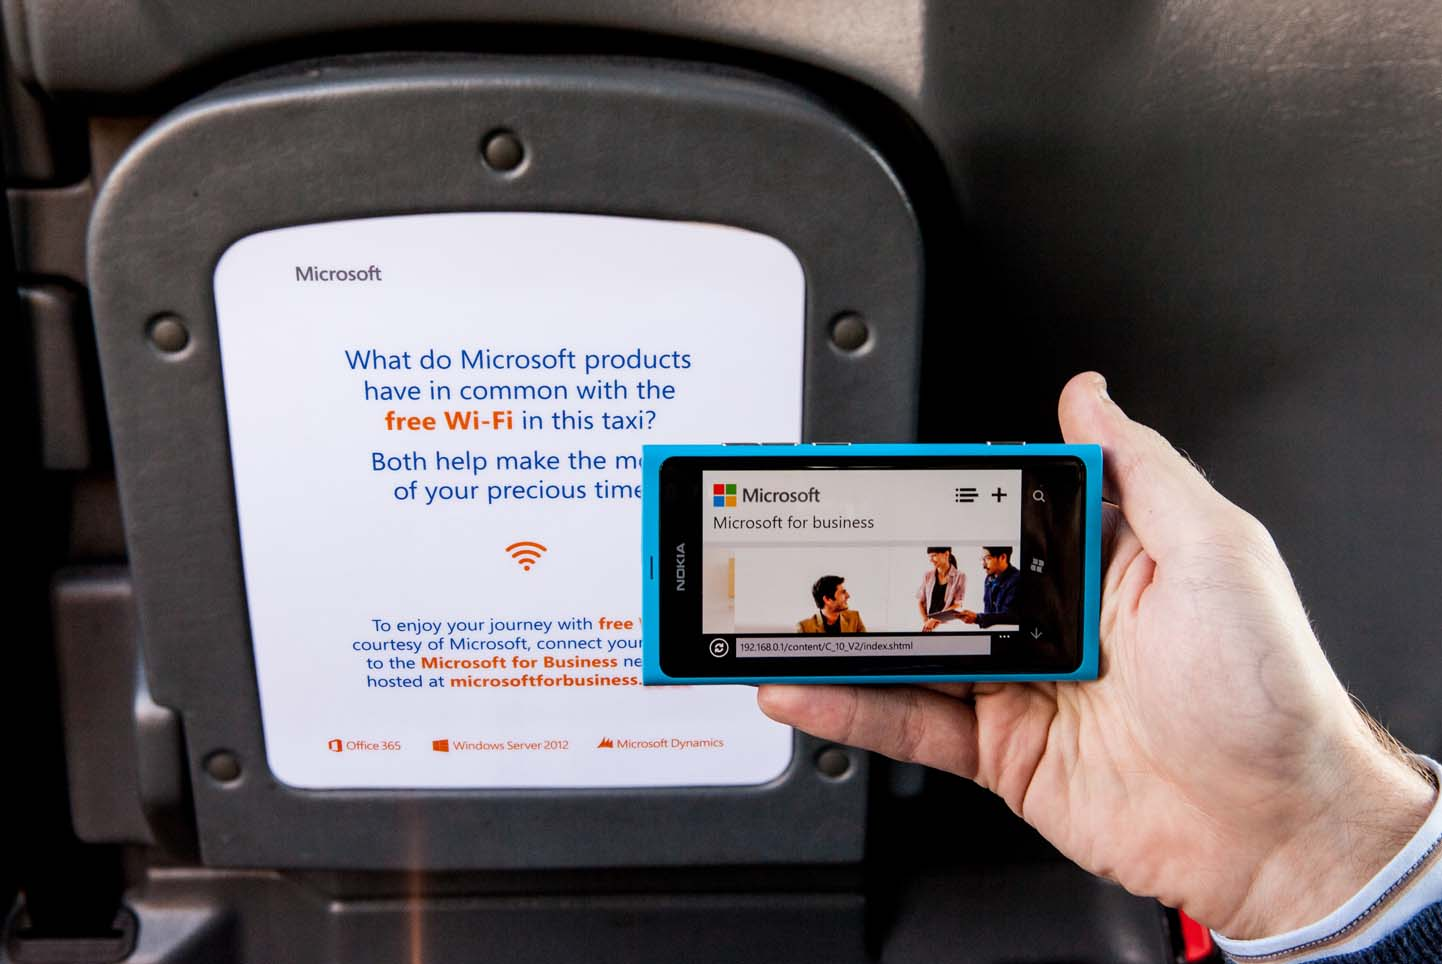 2013 Ubiquitous taxi advertising campaign for Microsoft - Free WiFi in this Taxi from Microsoft